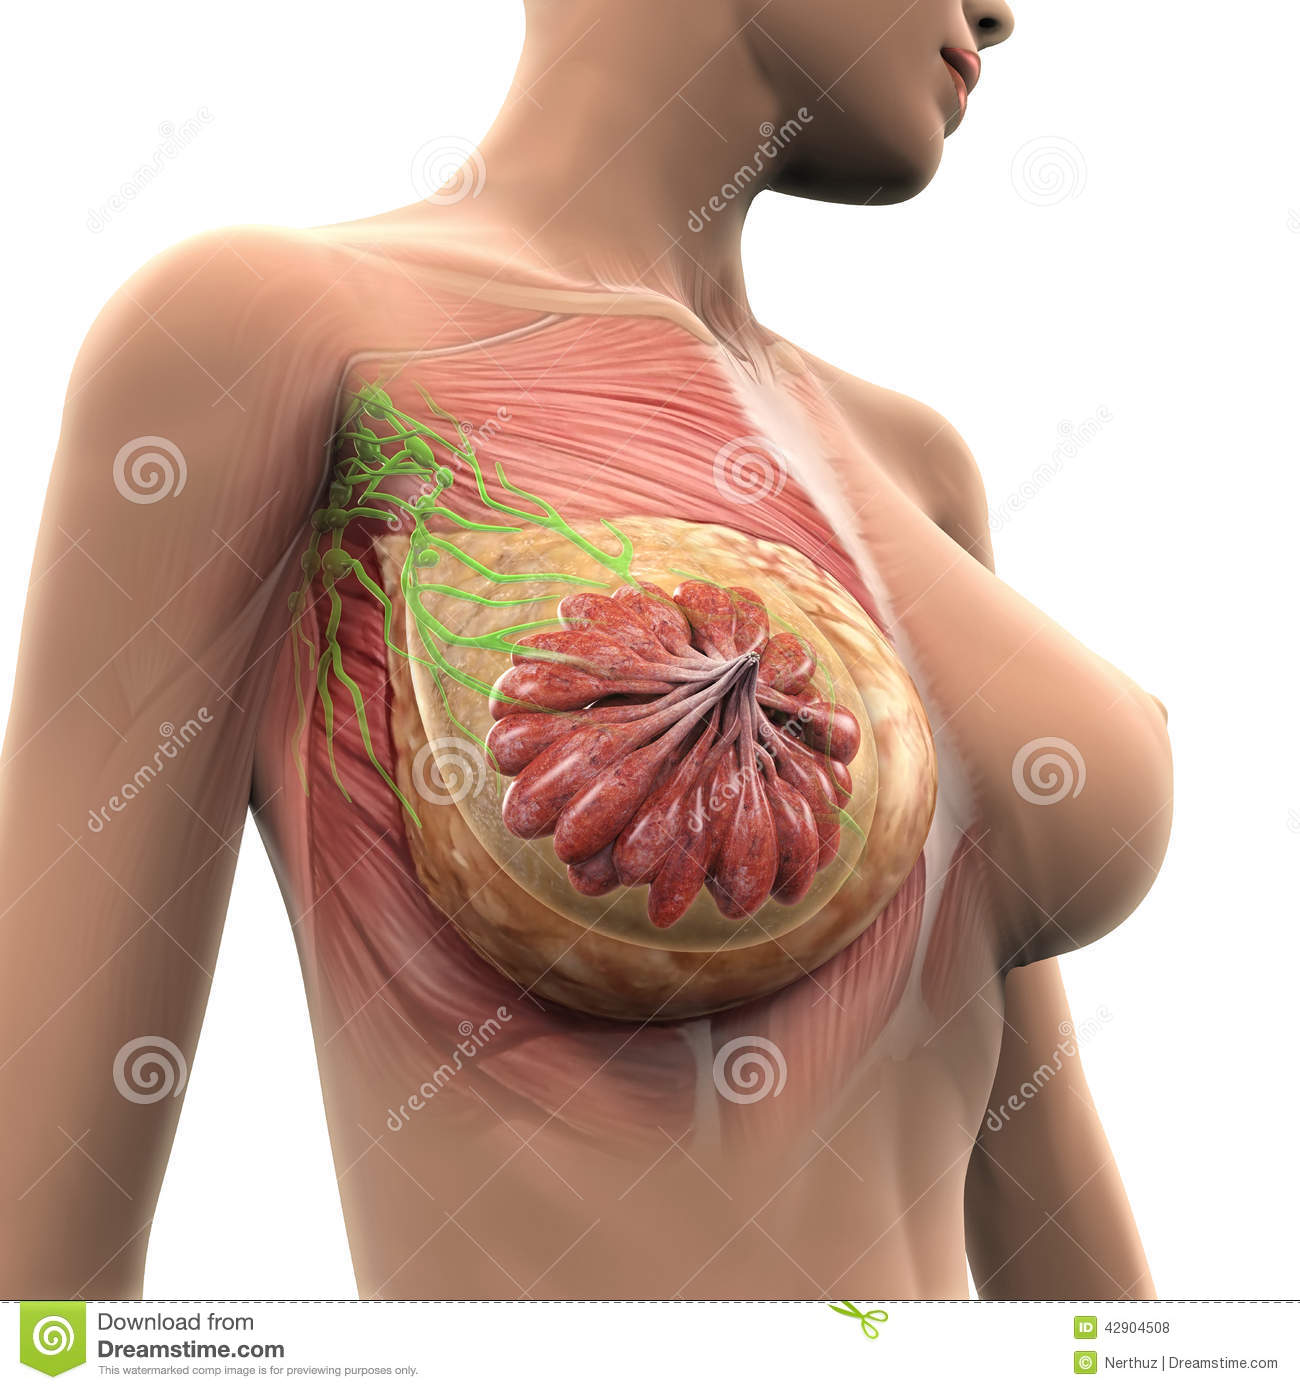 Slide show: Female breast anatomy - Mayo Clinic